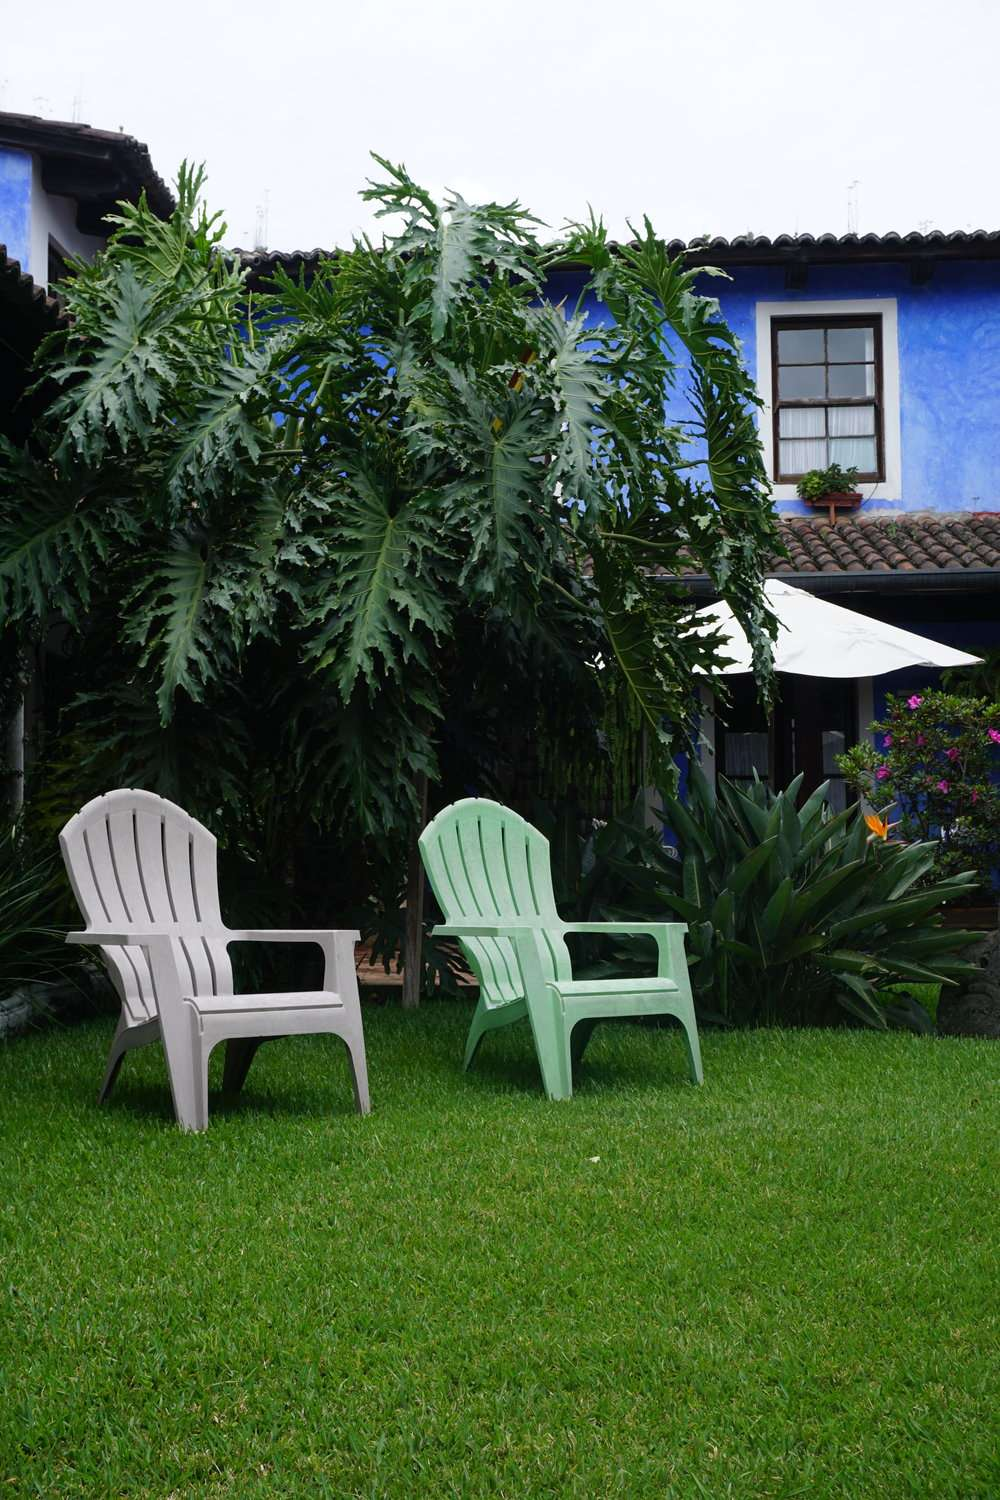 two wooden lounge chairs in the garden at Casa Capuchinas